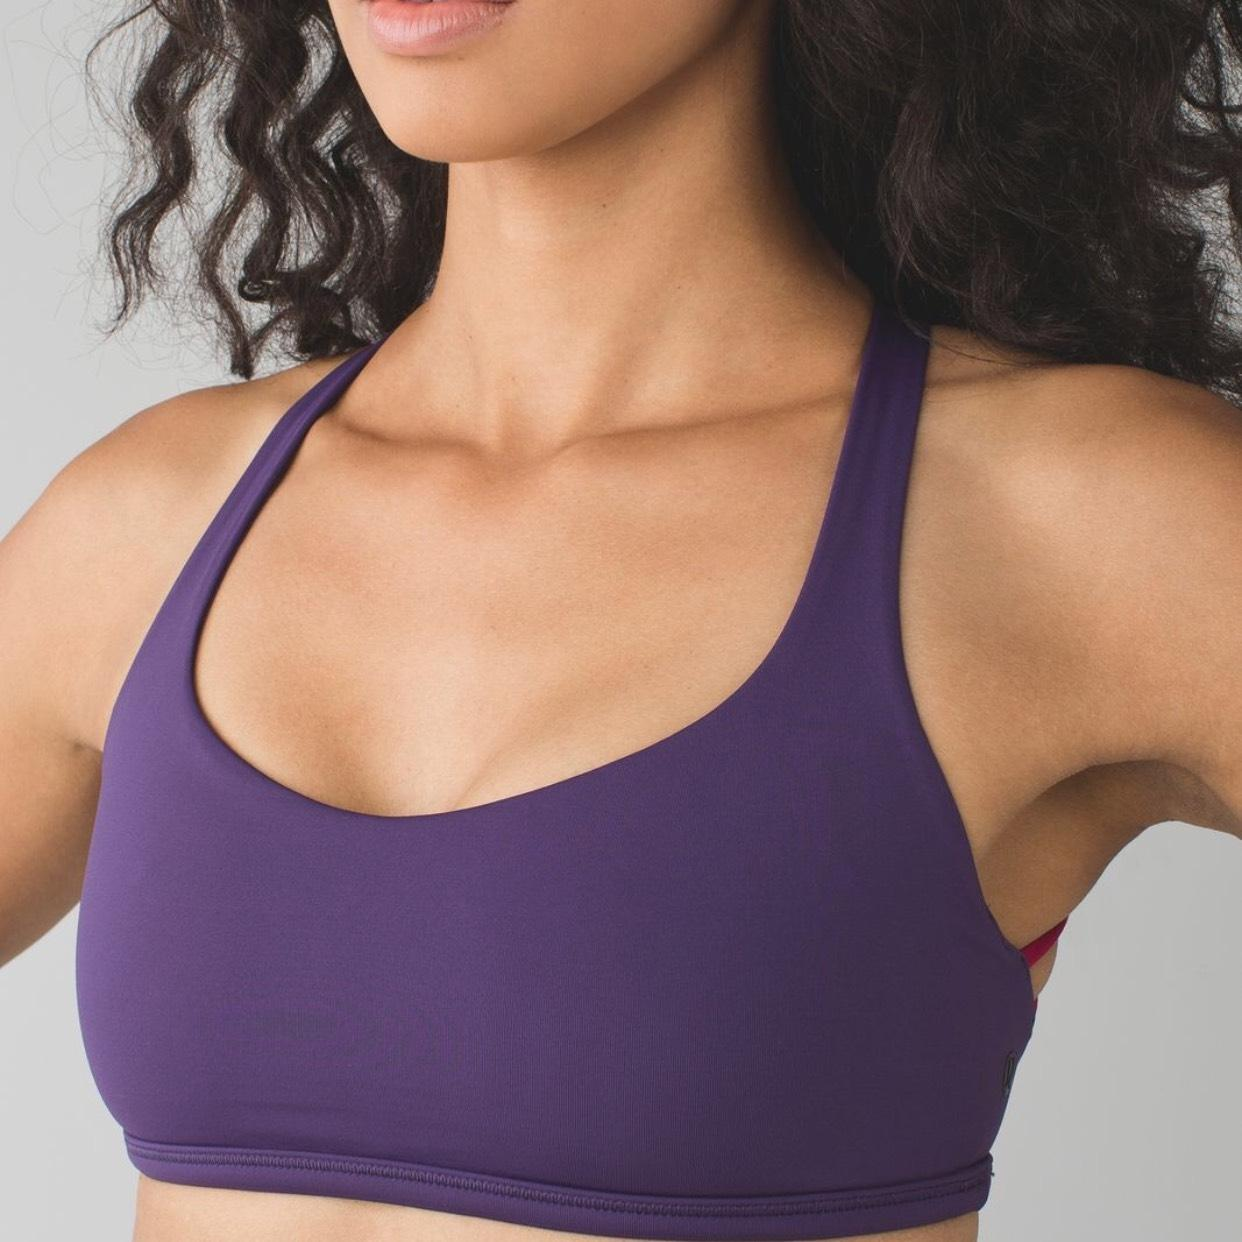 lululemon team d memo final Shop the speed up bra high support for c/d cup   women's bras we broke  the bra mold this bra features flattering molded foam cups that give you high.